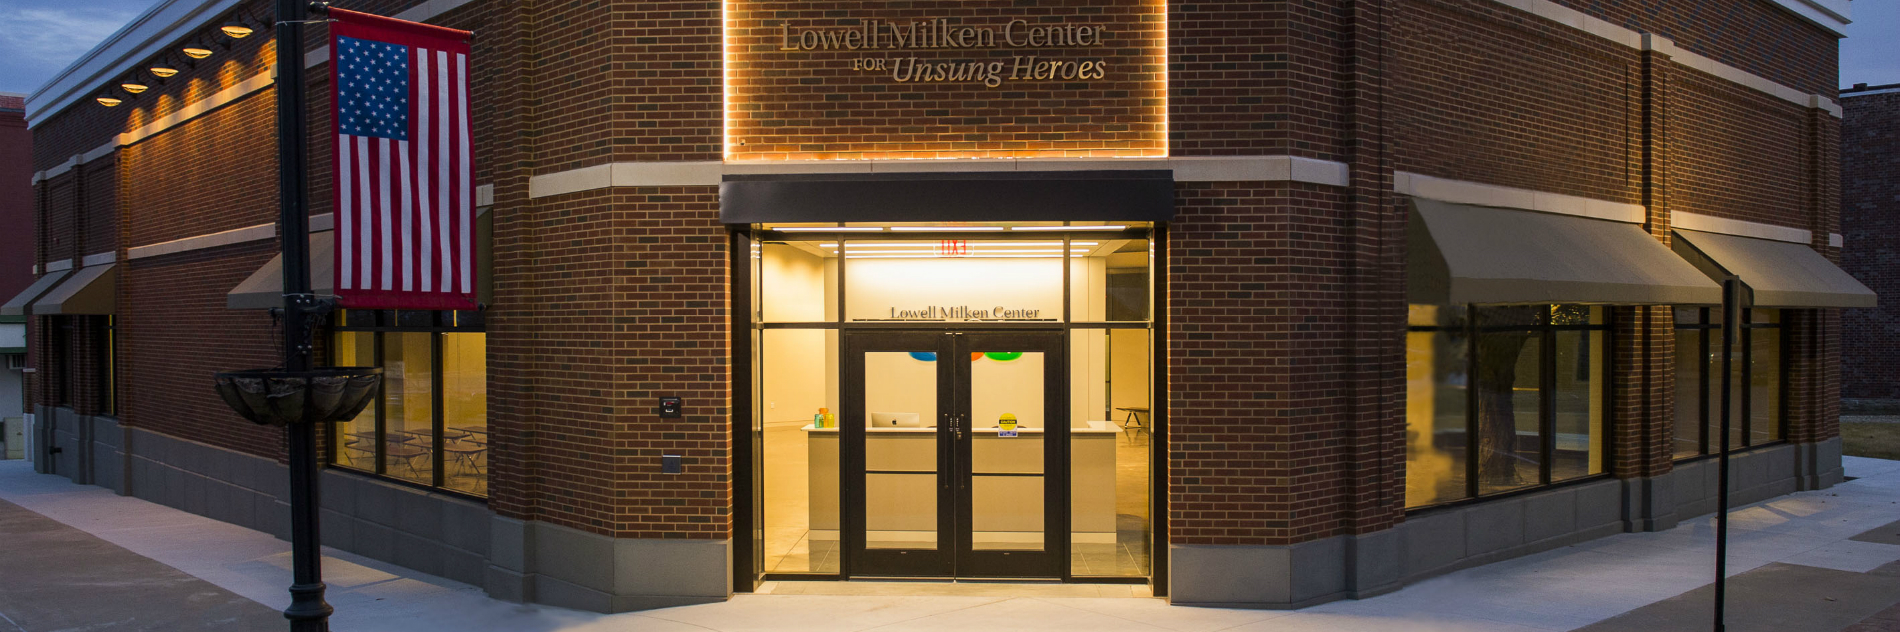 LOWELL-MILKEN-CENTER---OFFICIAL-PIC---NEW-BUILDING.jpg